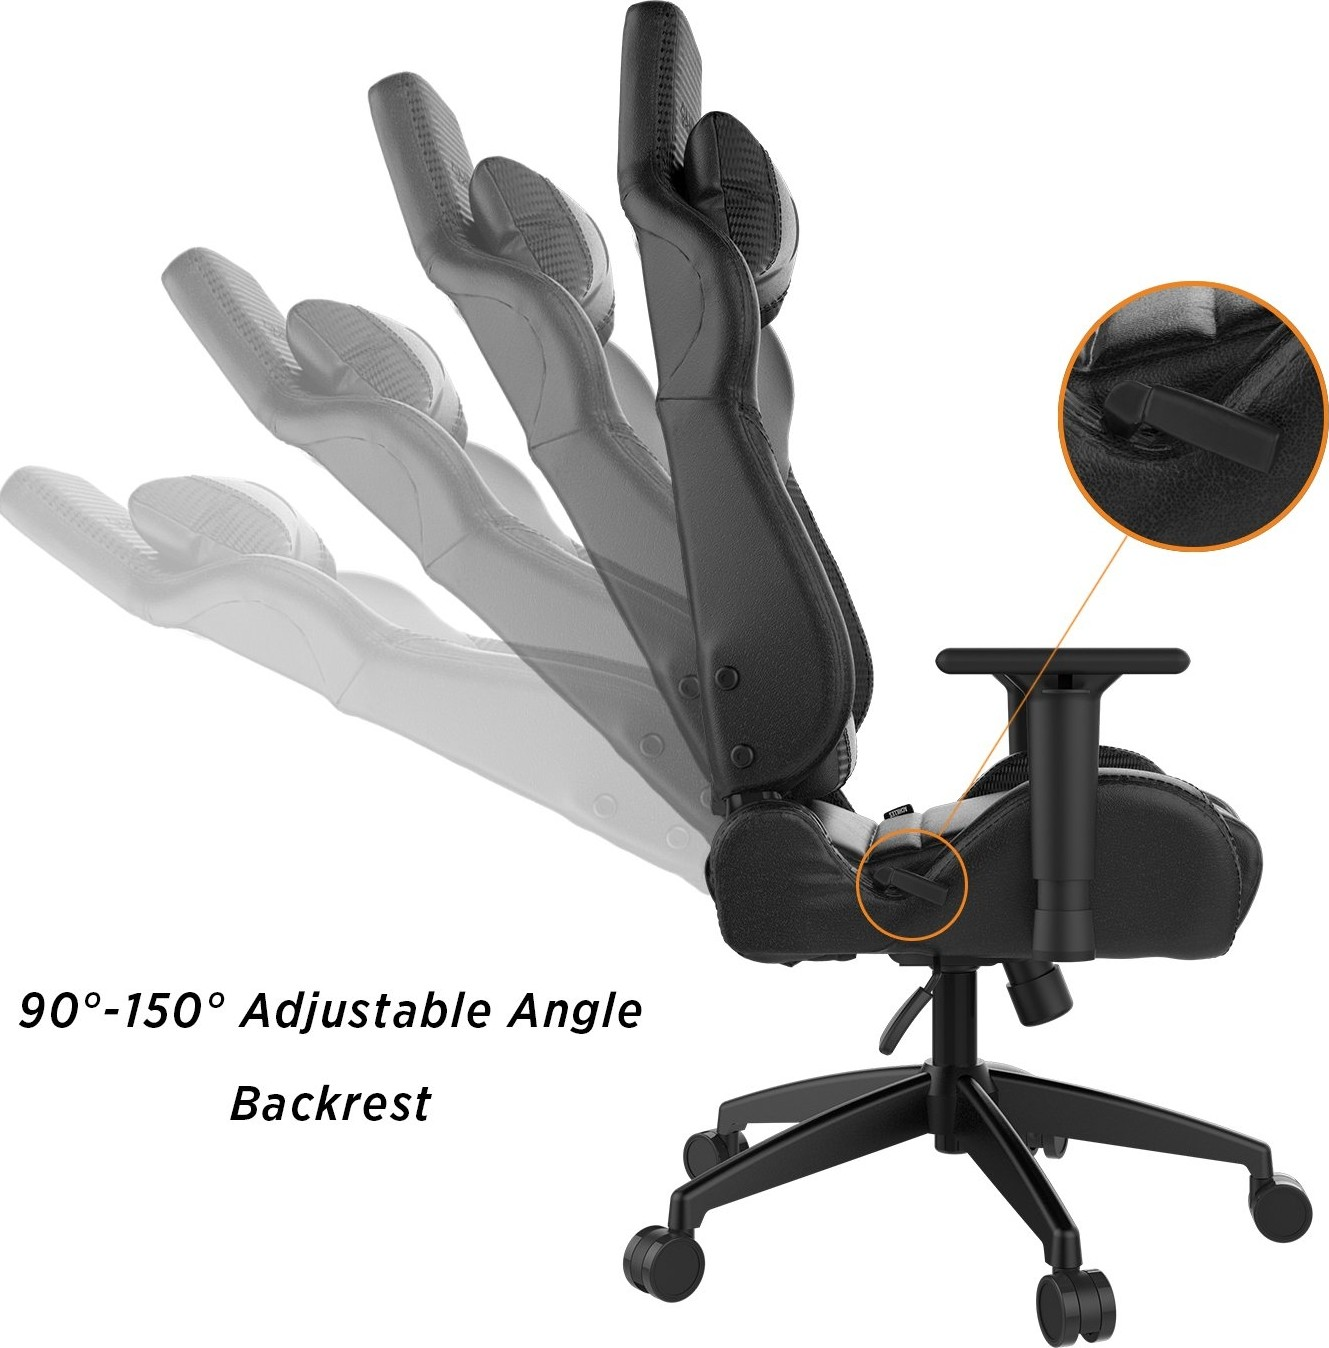 Remarkable Gamdias Achilles P1 Lmulti Color Rgb Gaming Chair High Back Headrest And Lumbar Black Black Achil Alphanode Cool Chair Designs And Ideas Alphanodeonline